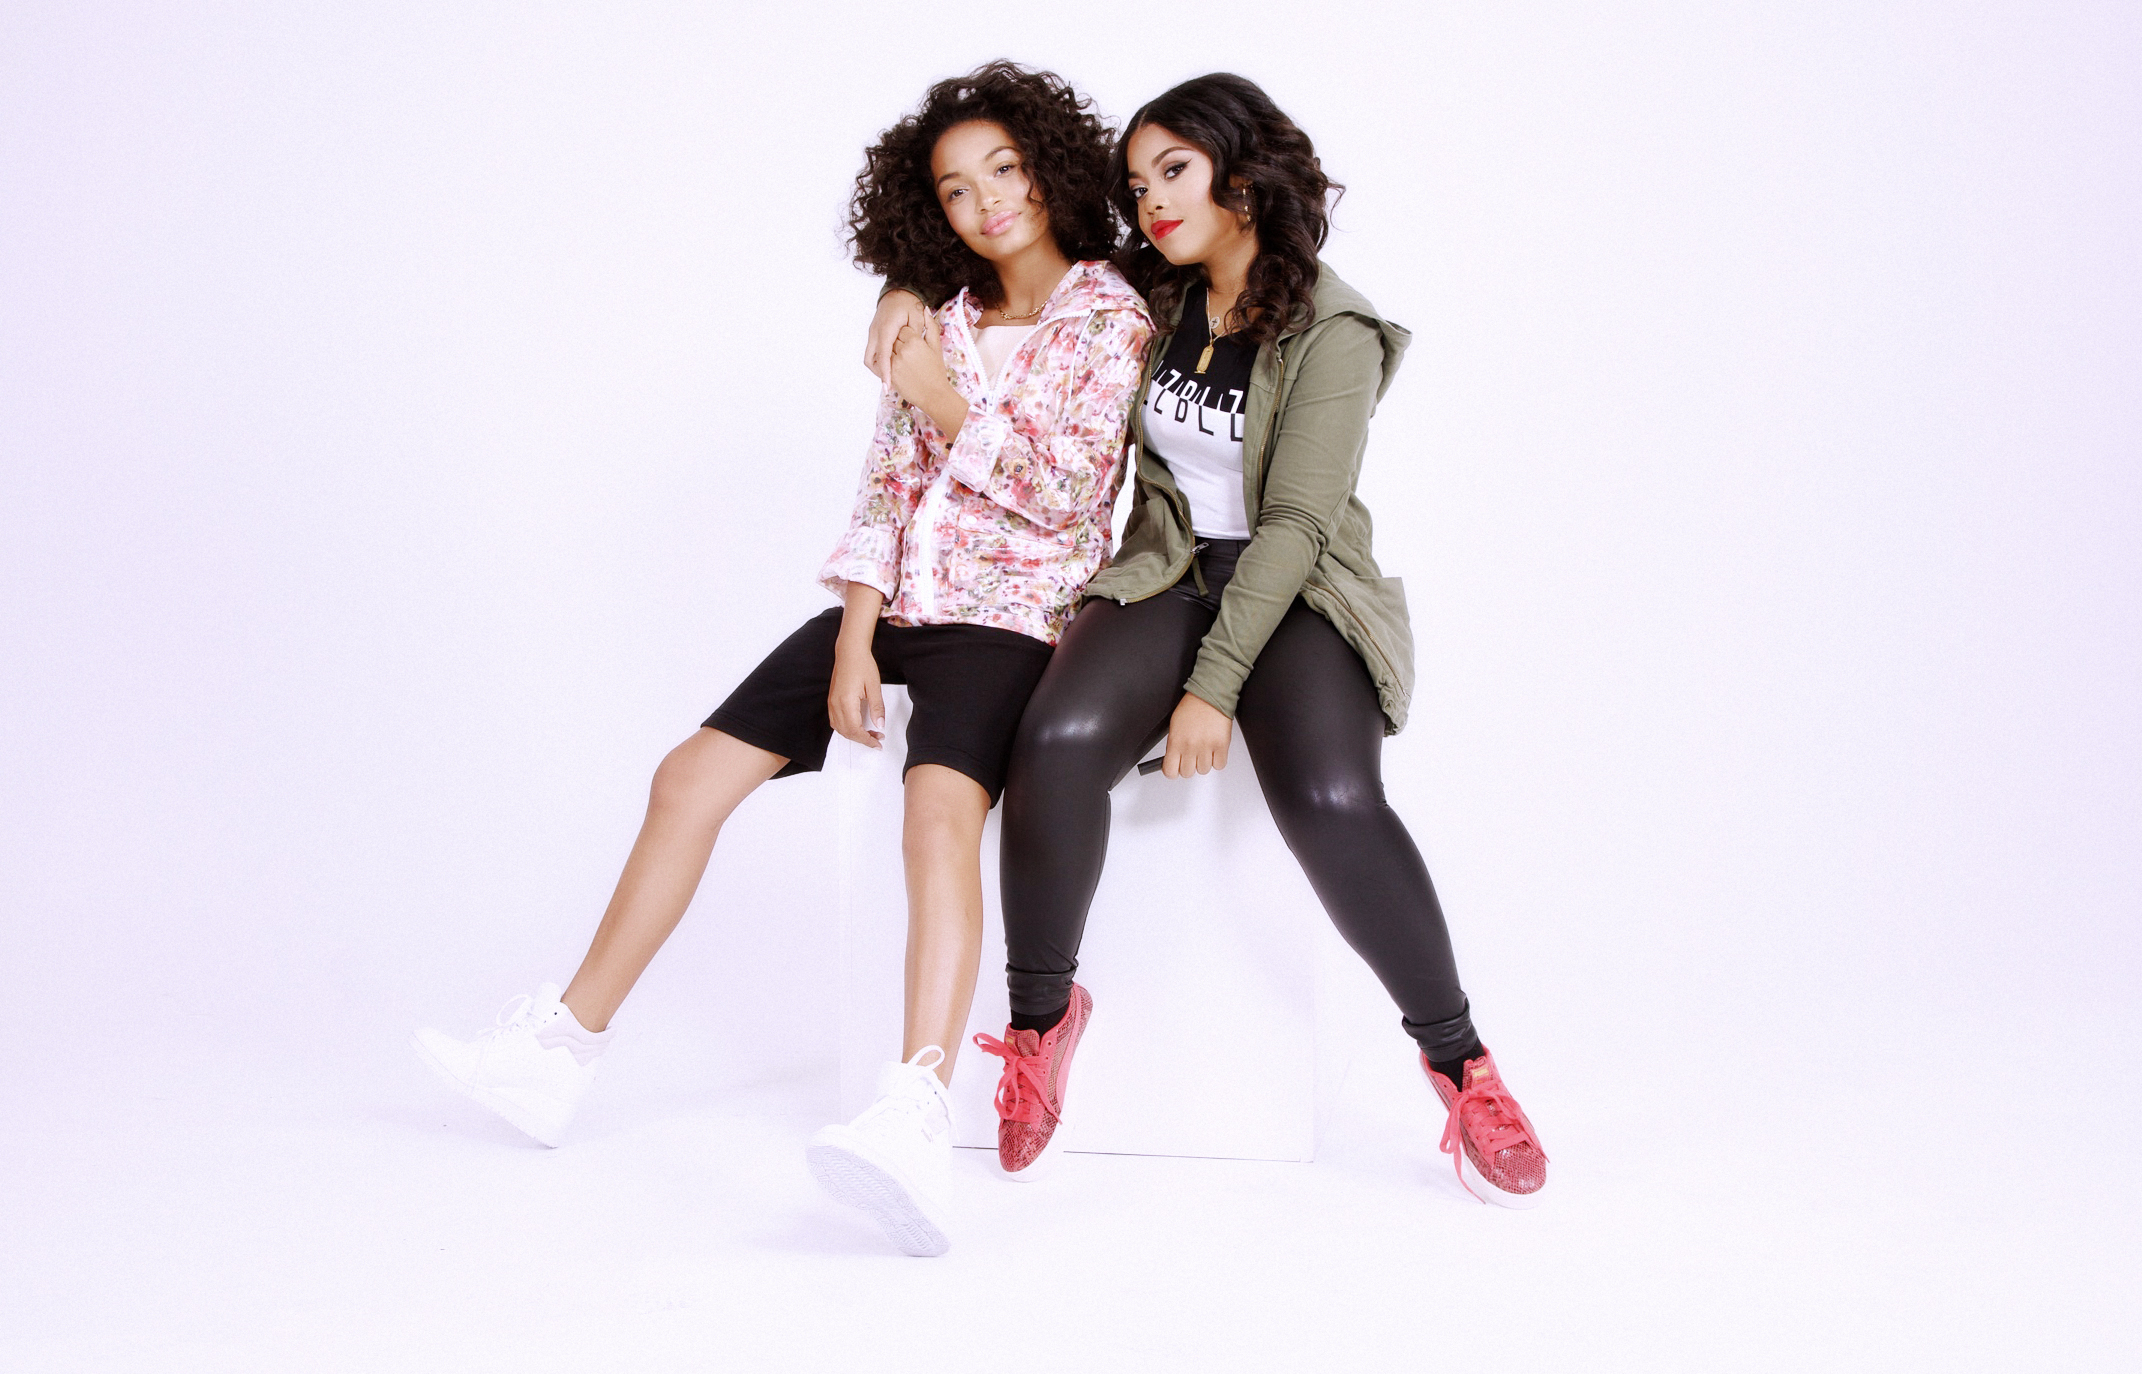 "Yara (left) wearing ""Sunrise in Harlem"" Lipmatic gloss, jacket by Top Shop, shorts by HLZBLZ and sneakers by Puma. Destiny wearing ""Rose out of Concrete"" Lipmatic gloss, jacket by James Perse, top by HLZBLZ, and sneakers by Puma."